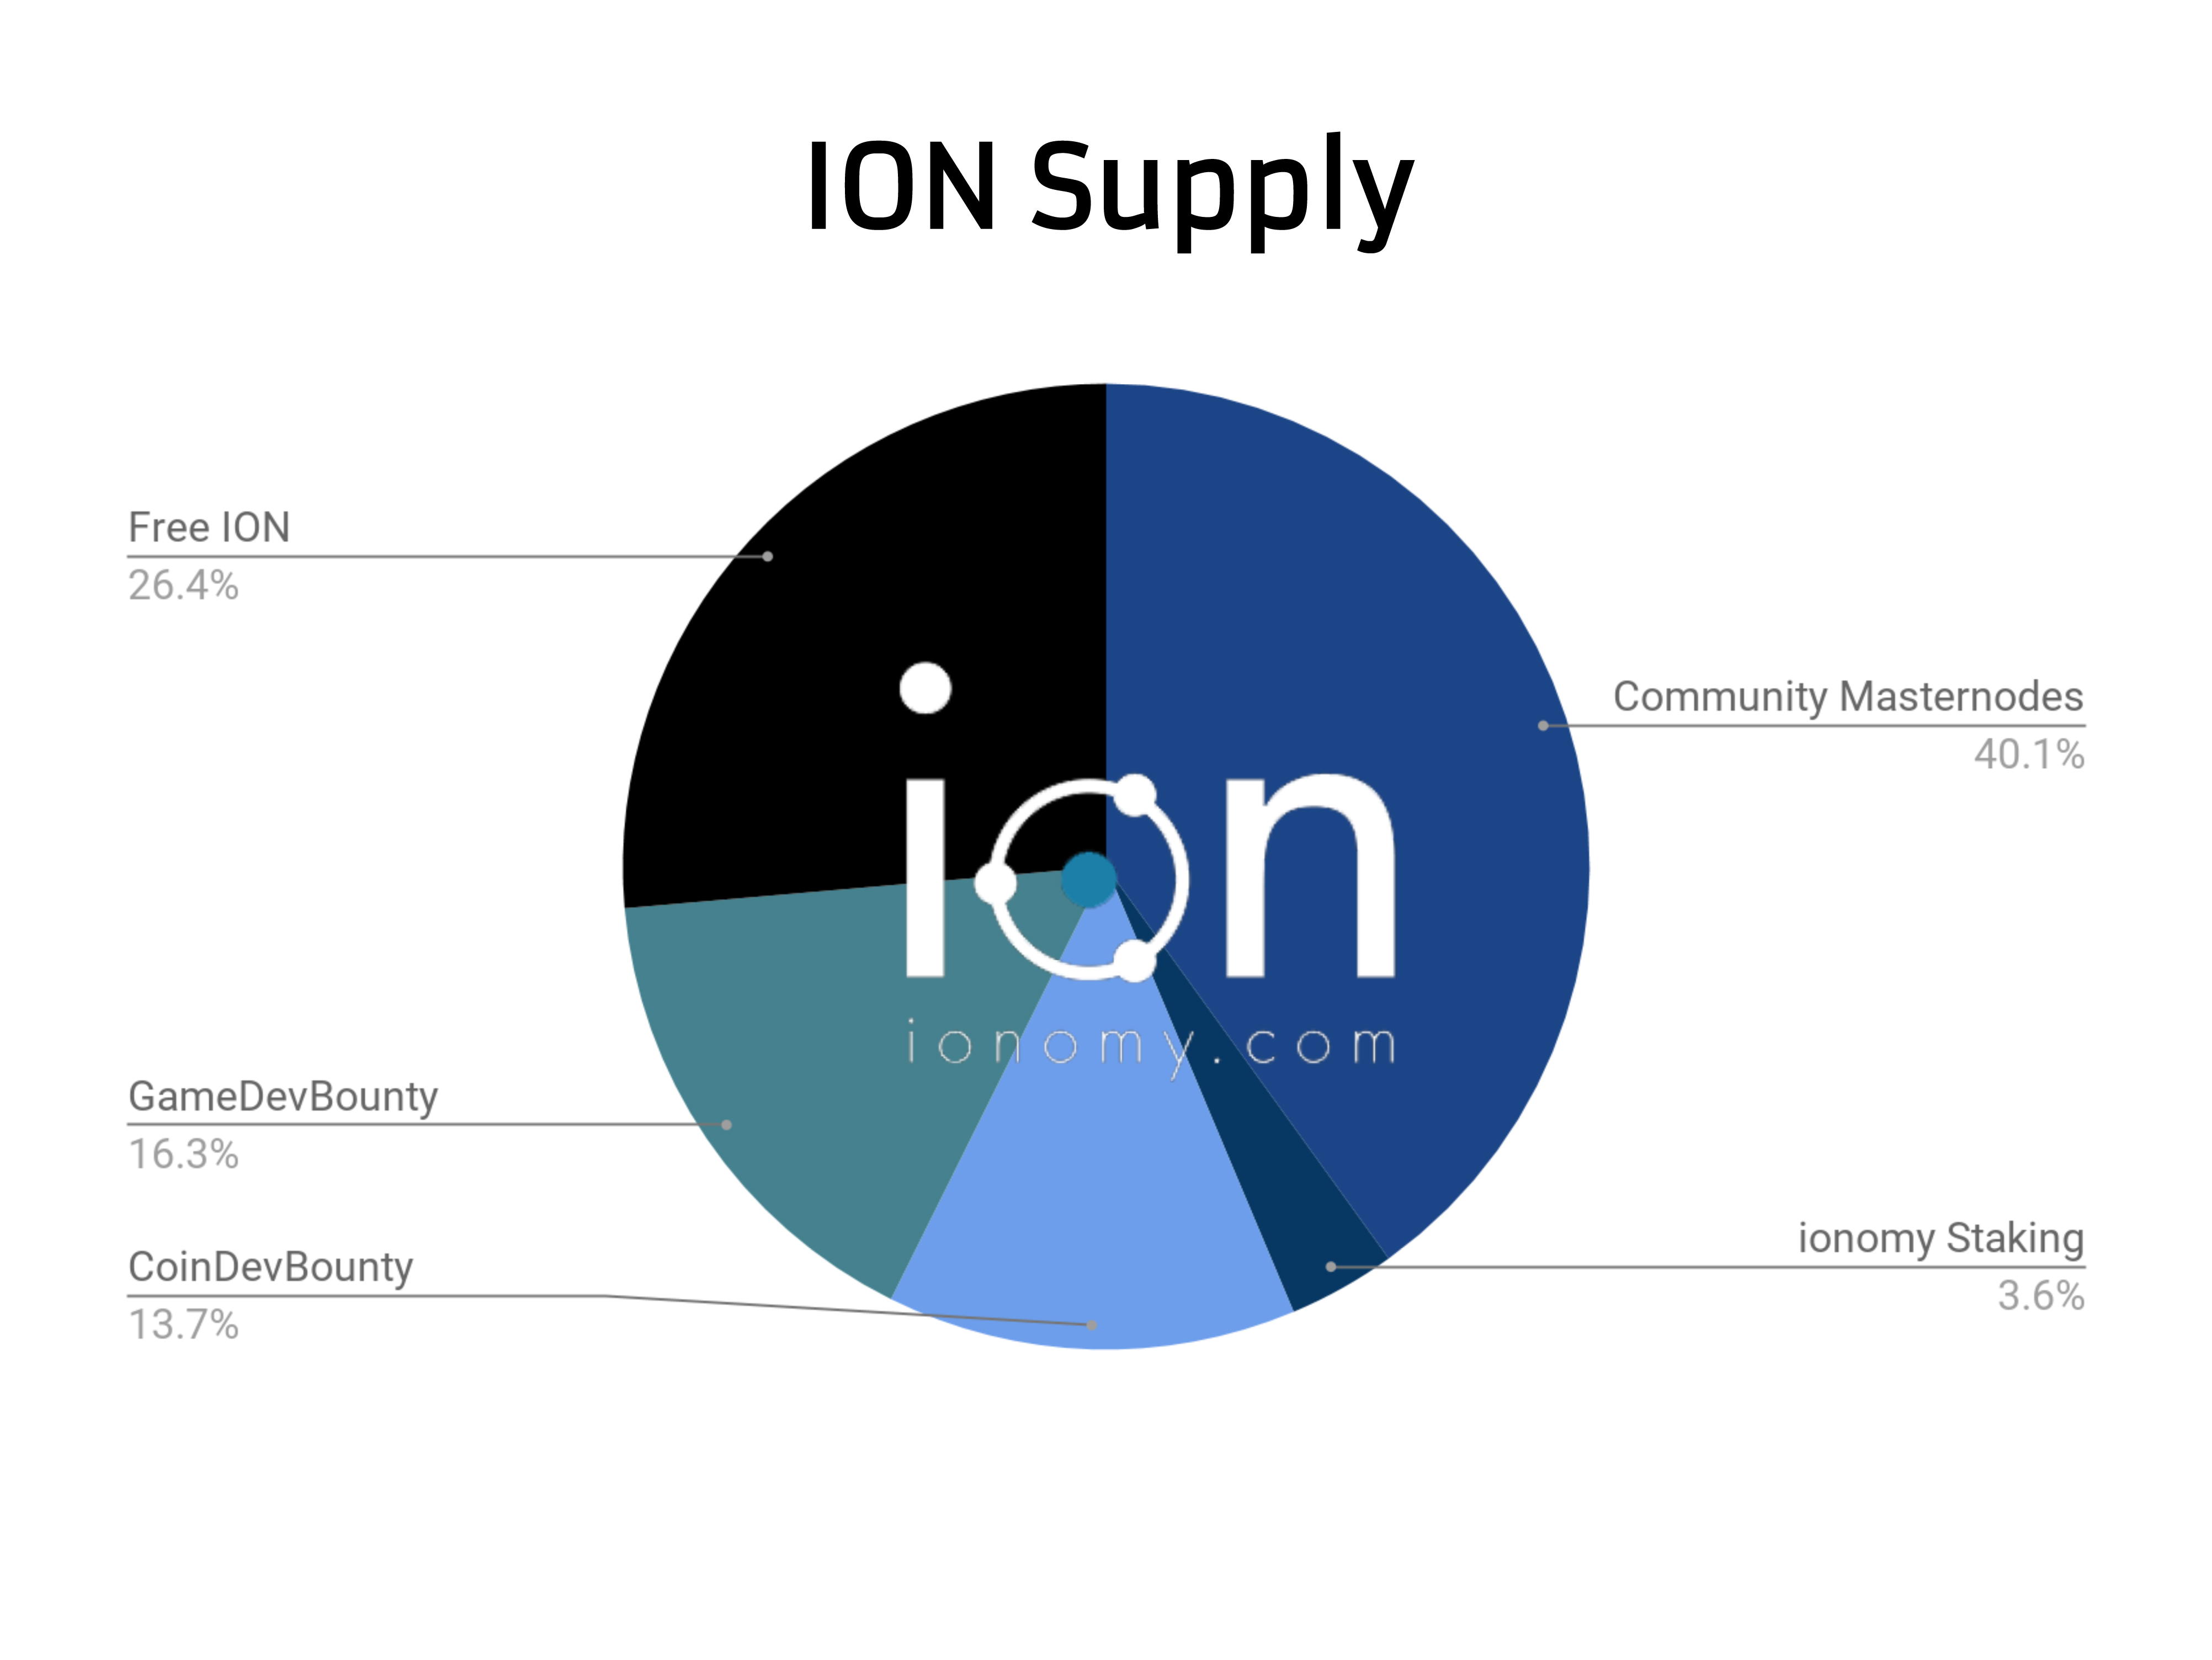 Awesome 3.6% Is Held By Ionomy In Staking Wallets Reserved To Support The Ionomy  Business Model.